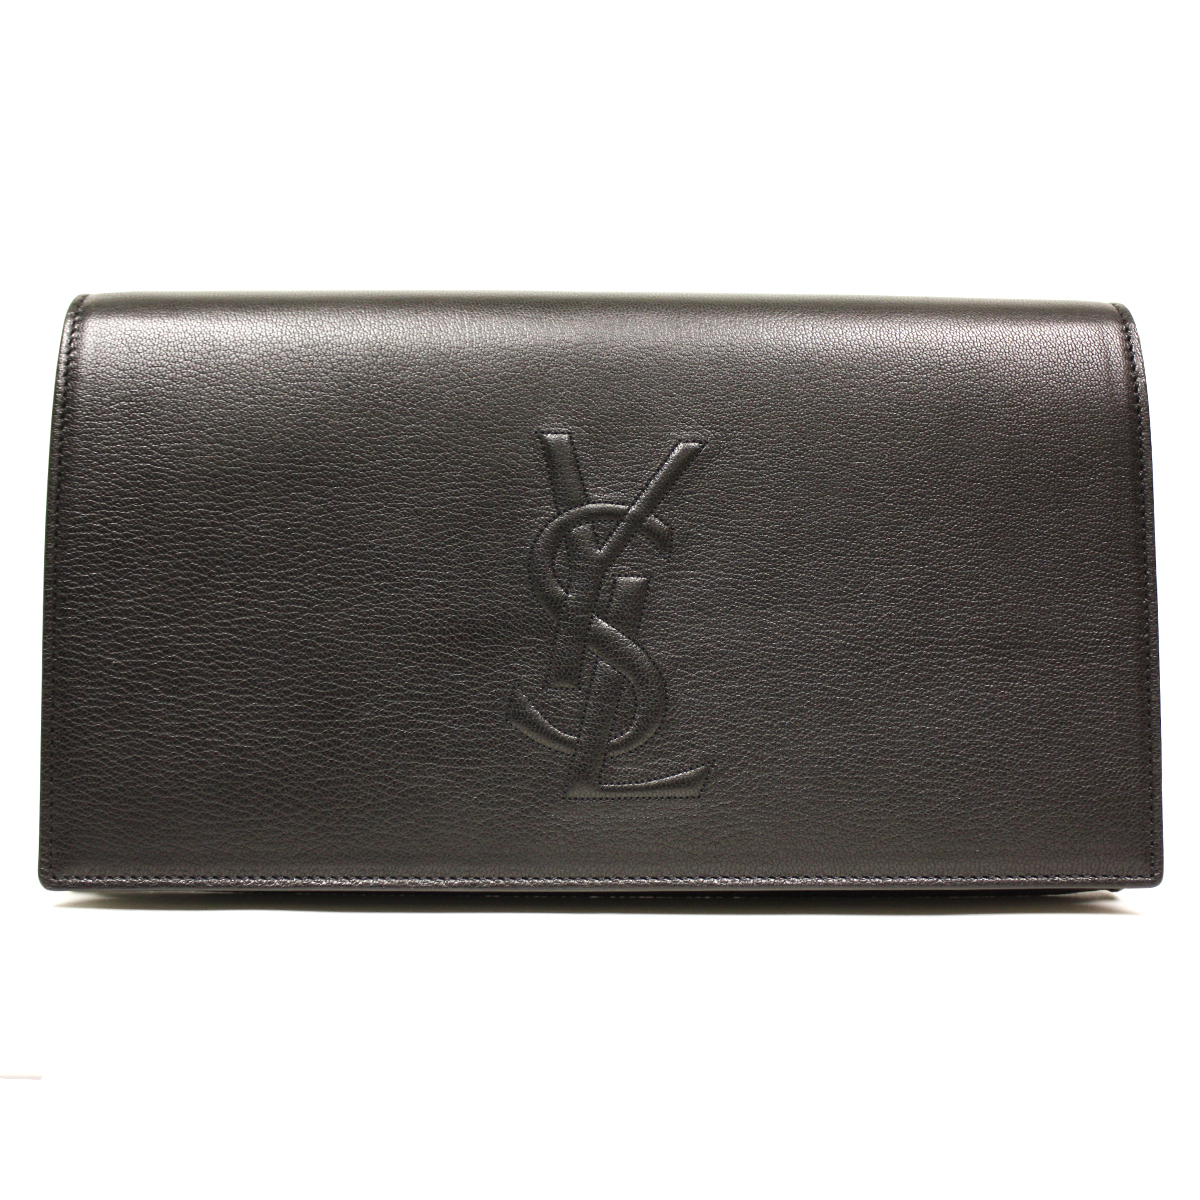 y saint laurent borse - YSL Belle de Jour Black Leather Large Clutch Bag 361120|Queen Bee ...